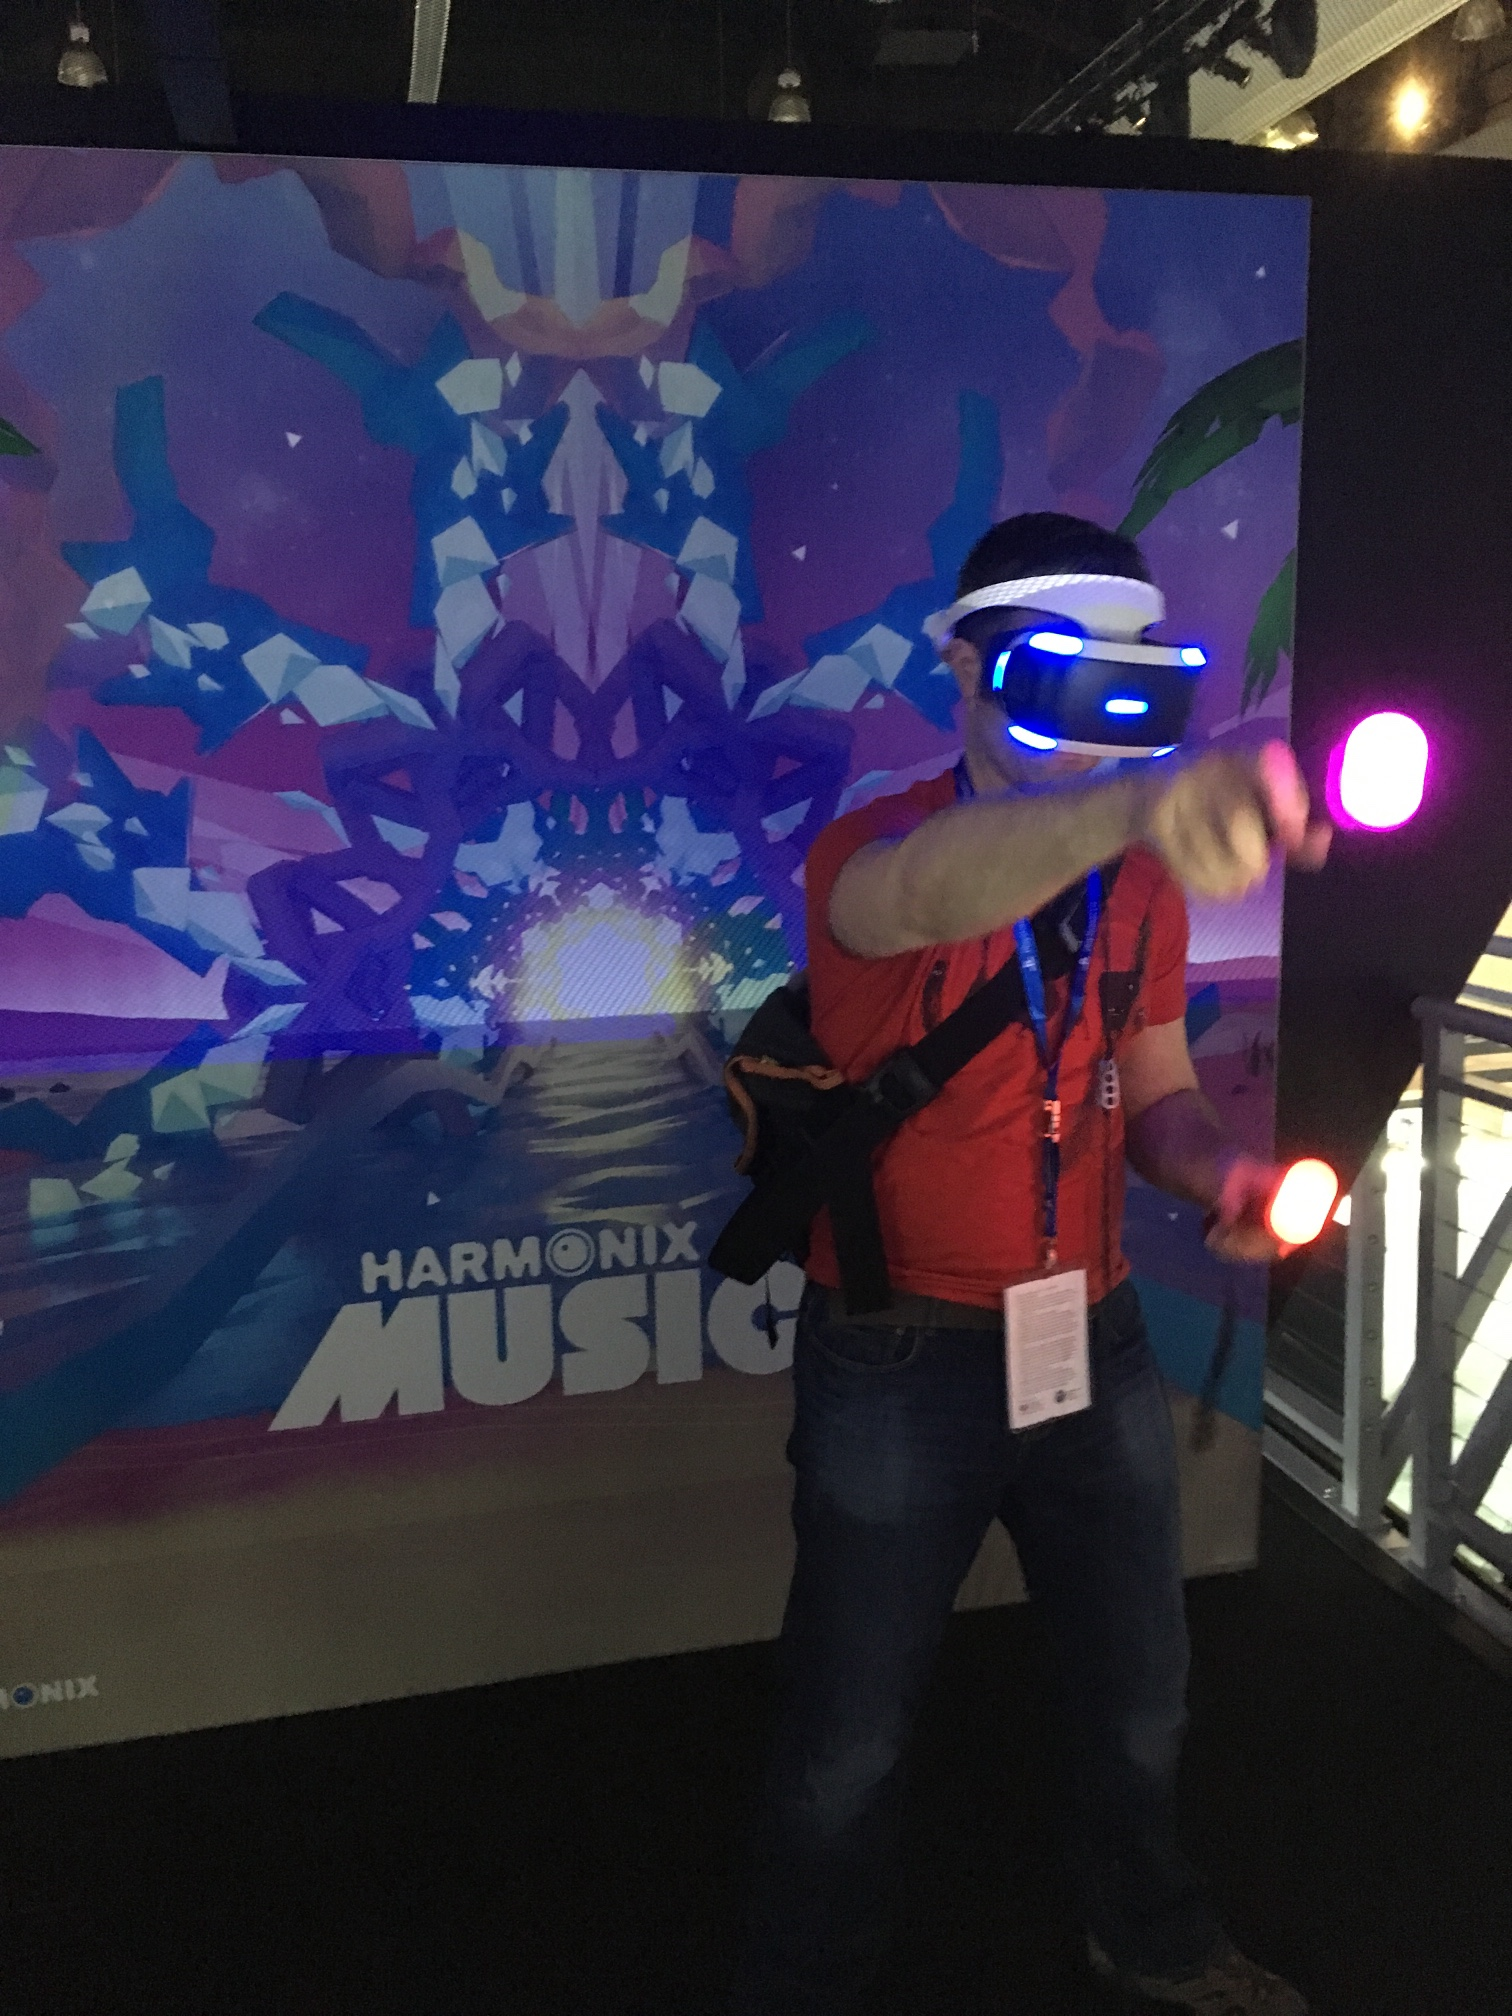 Chris testing out Harmonix Music VR!